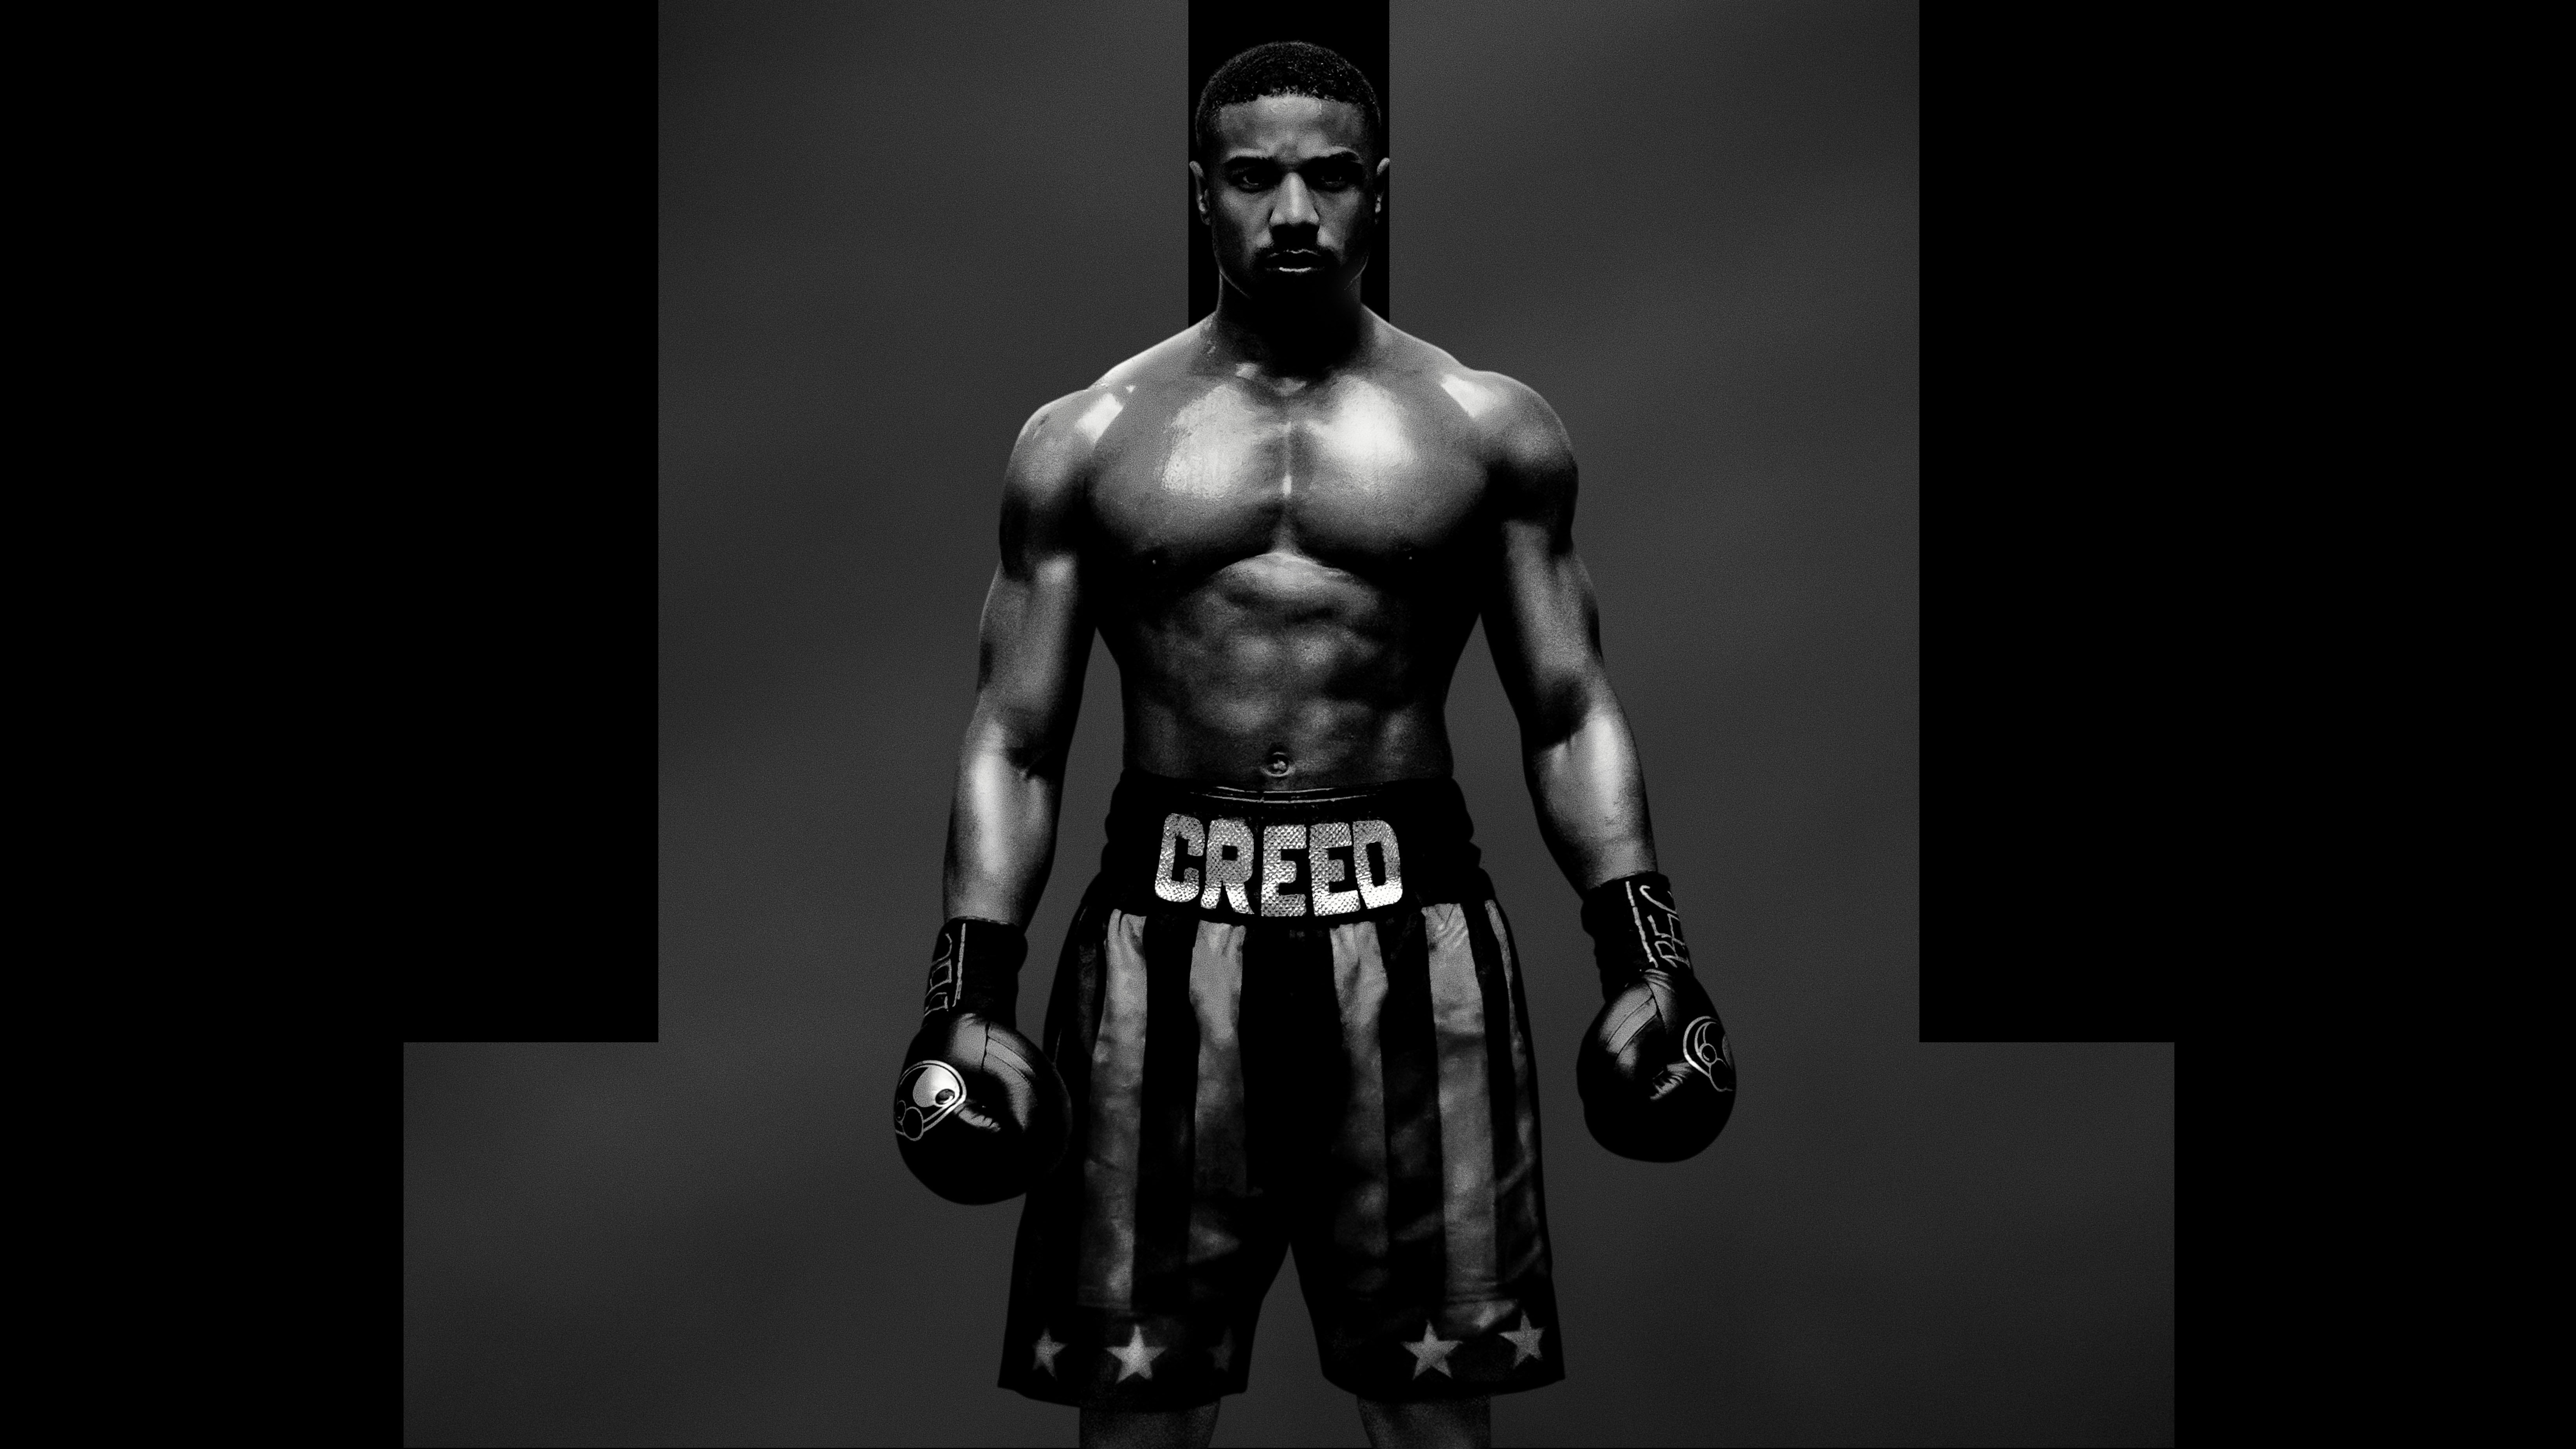 creed 2 movie  hd movies  4k wallpapers  images  backgrounds  photos and pictures